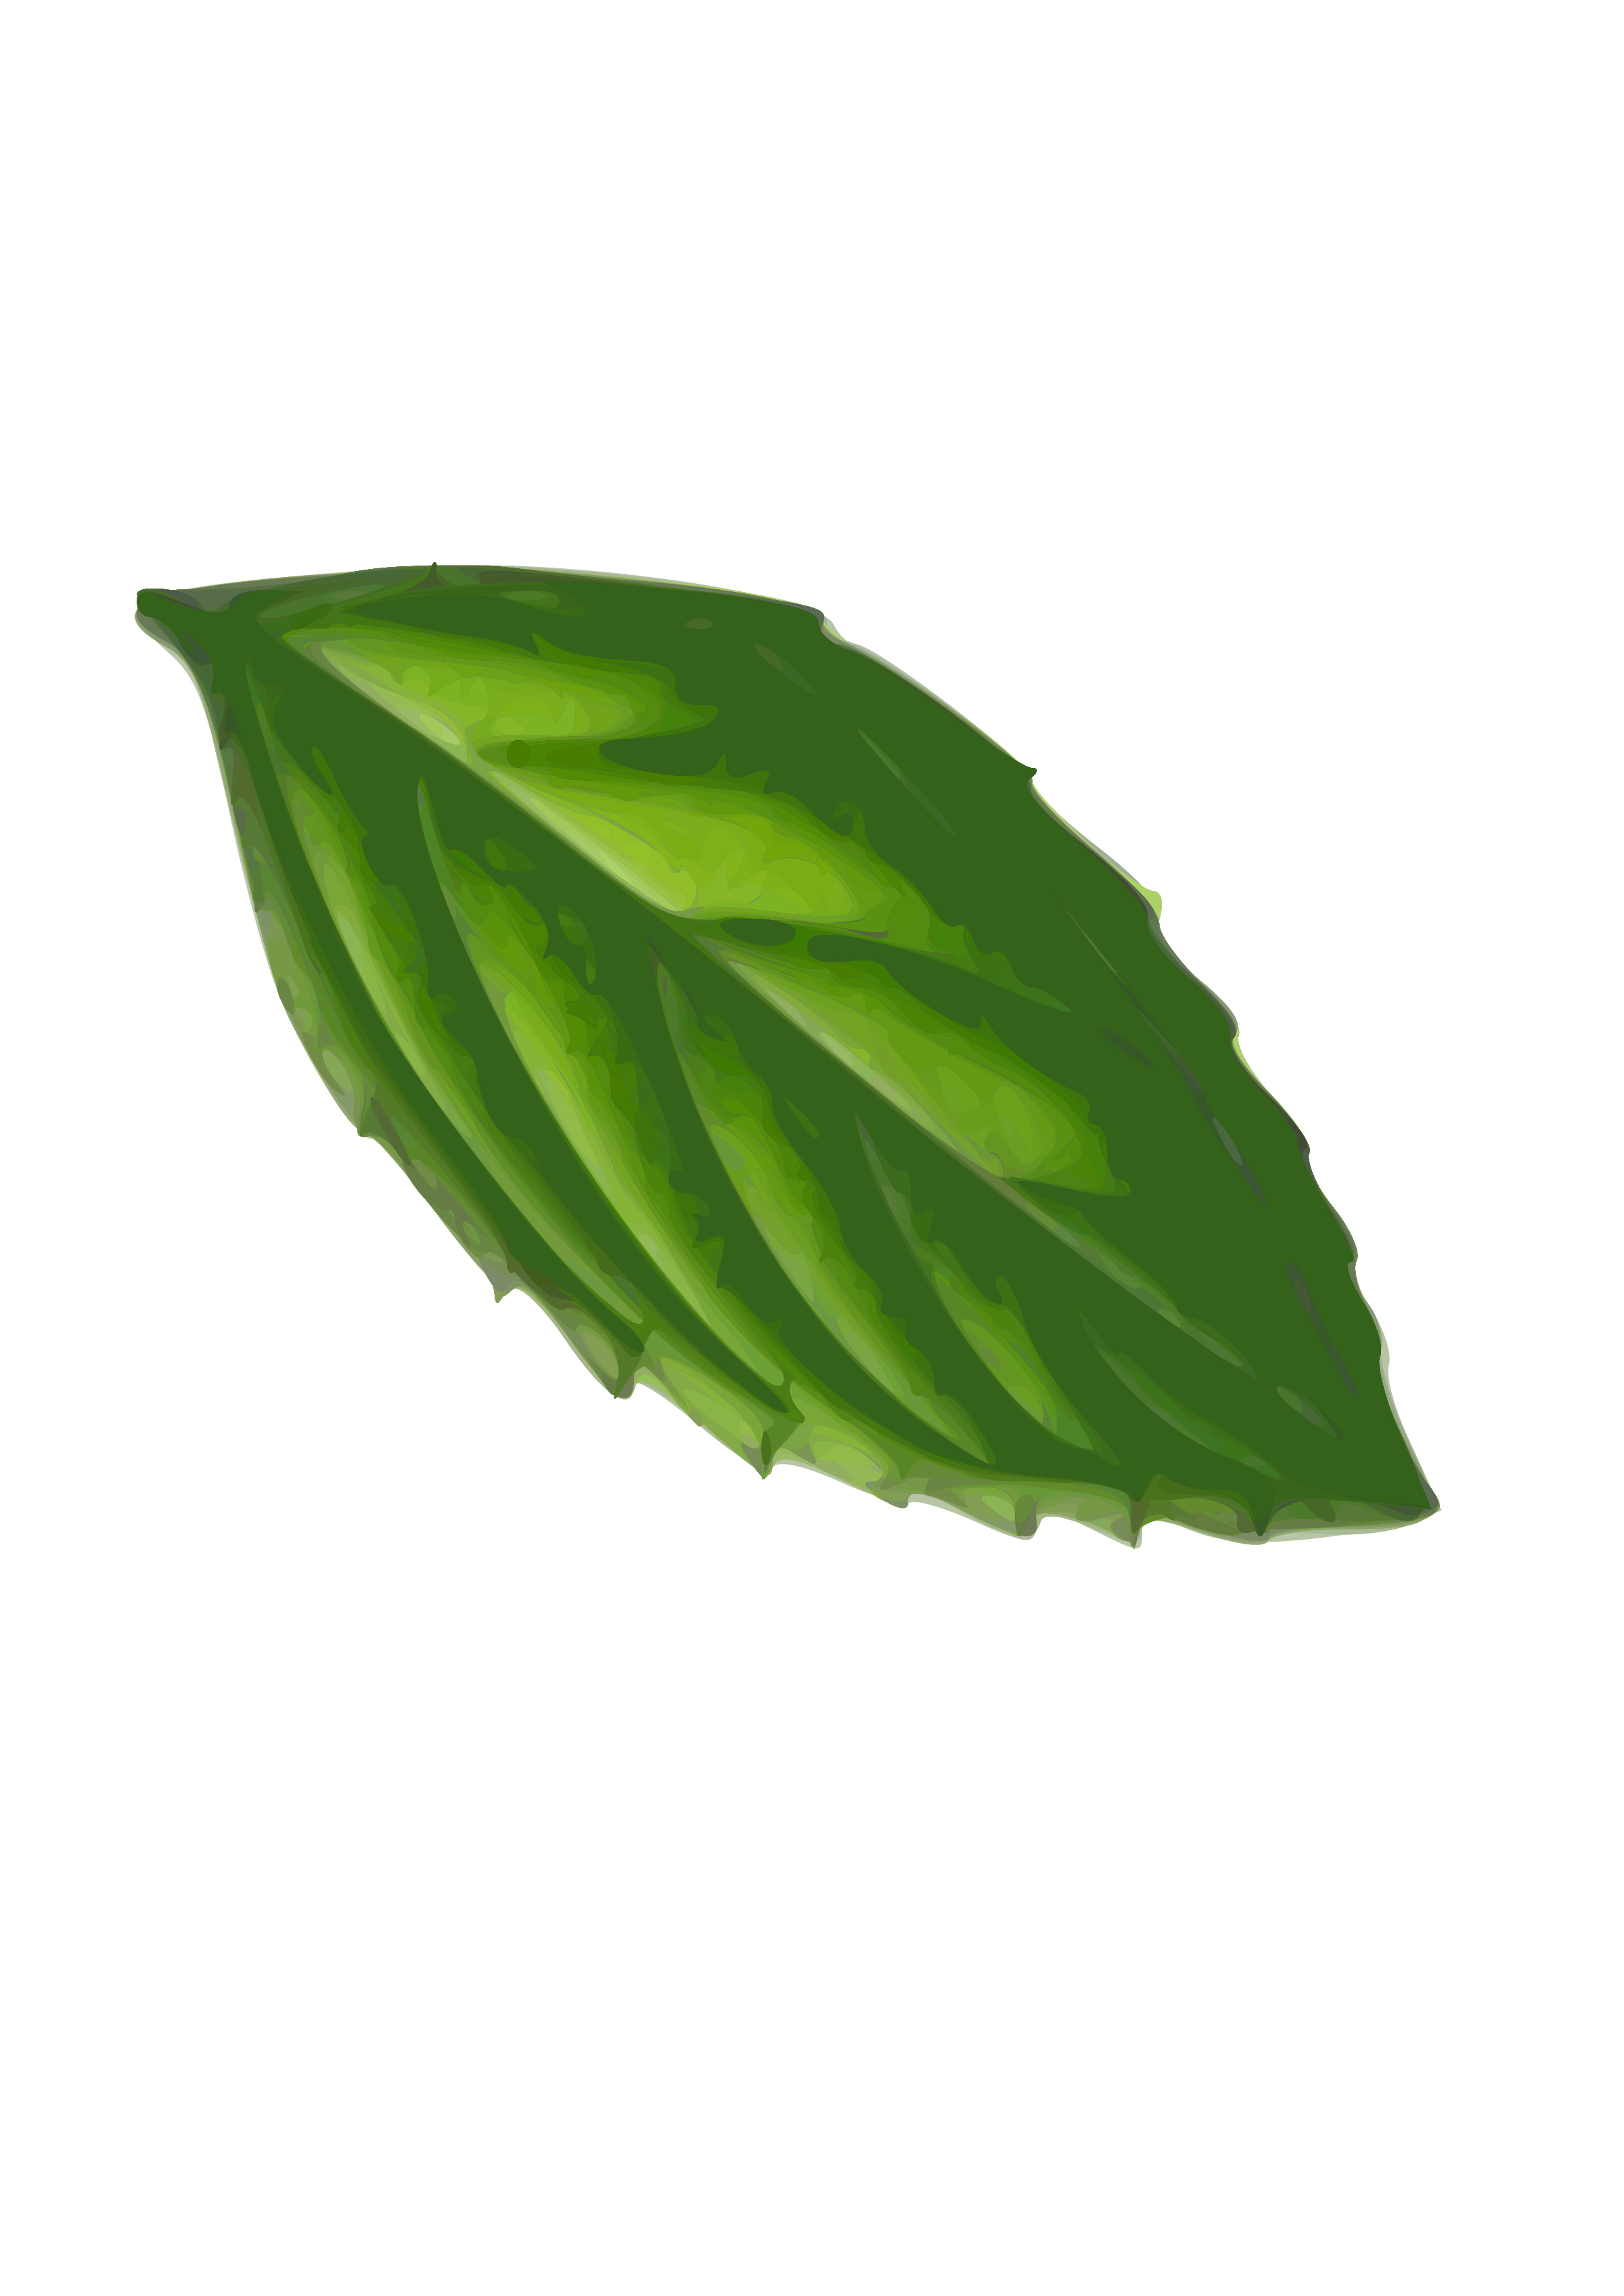 svg free library Leaf at getdrawings com. Basil drawing mint